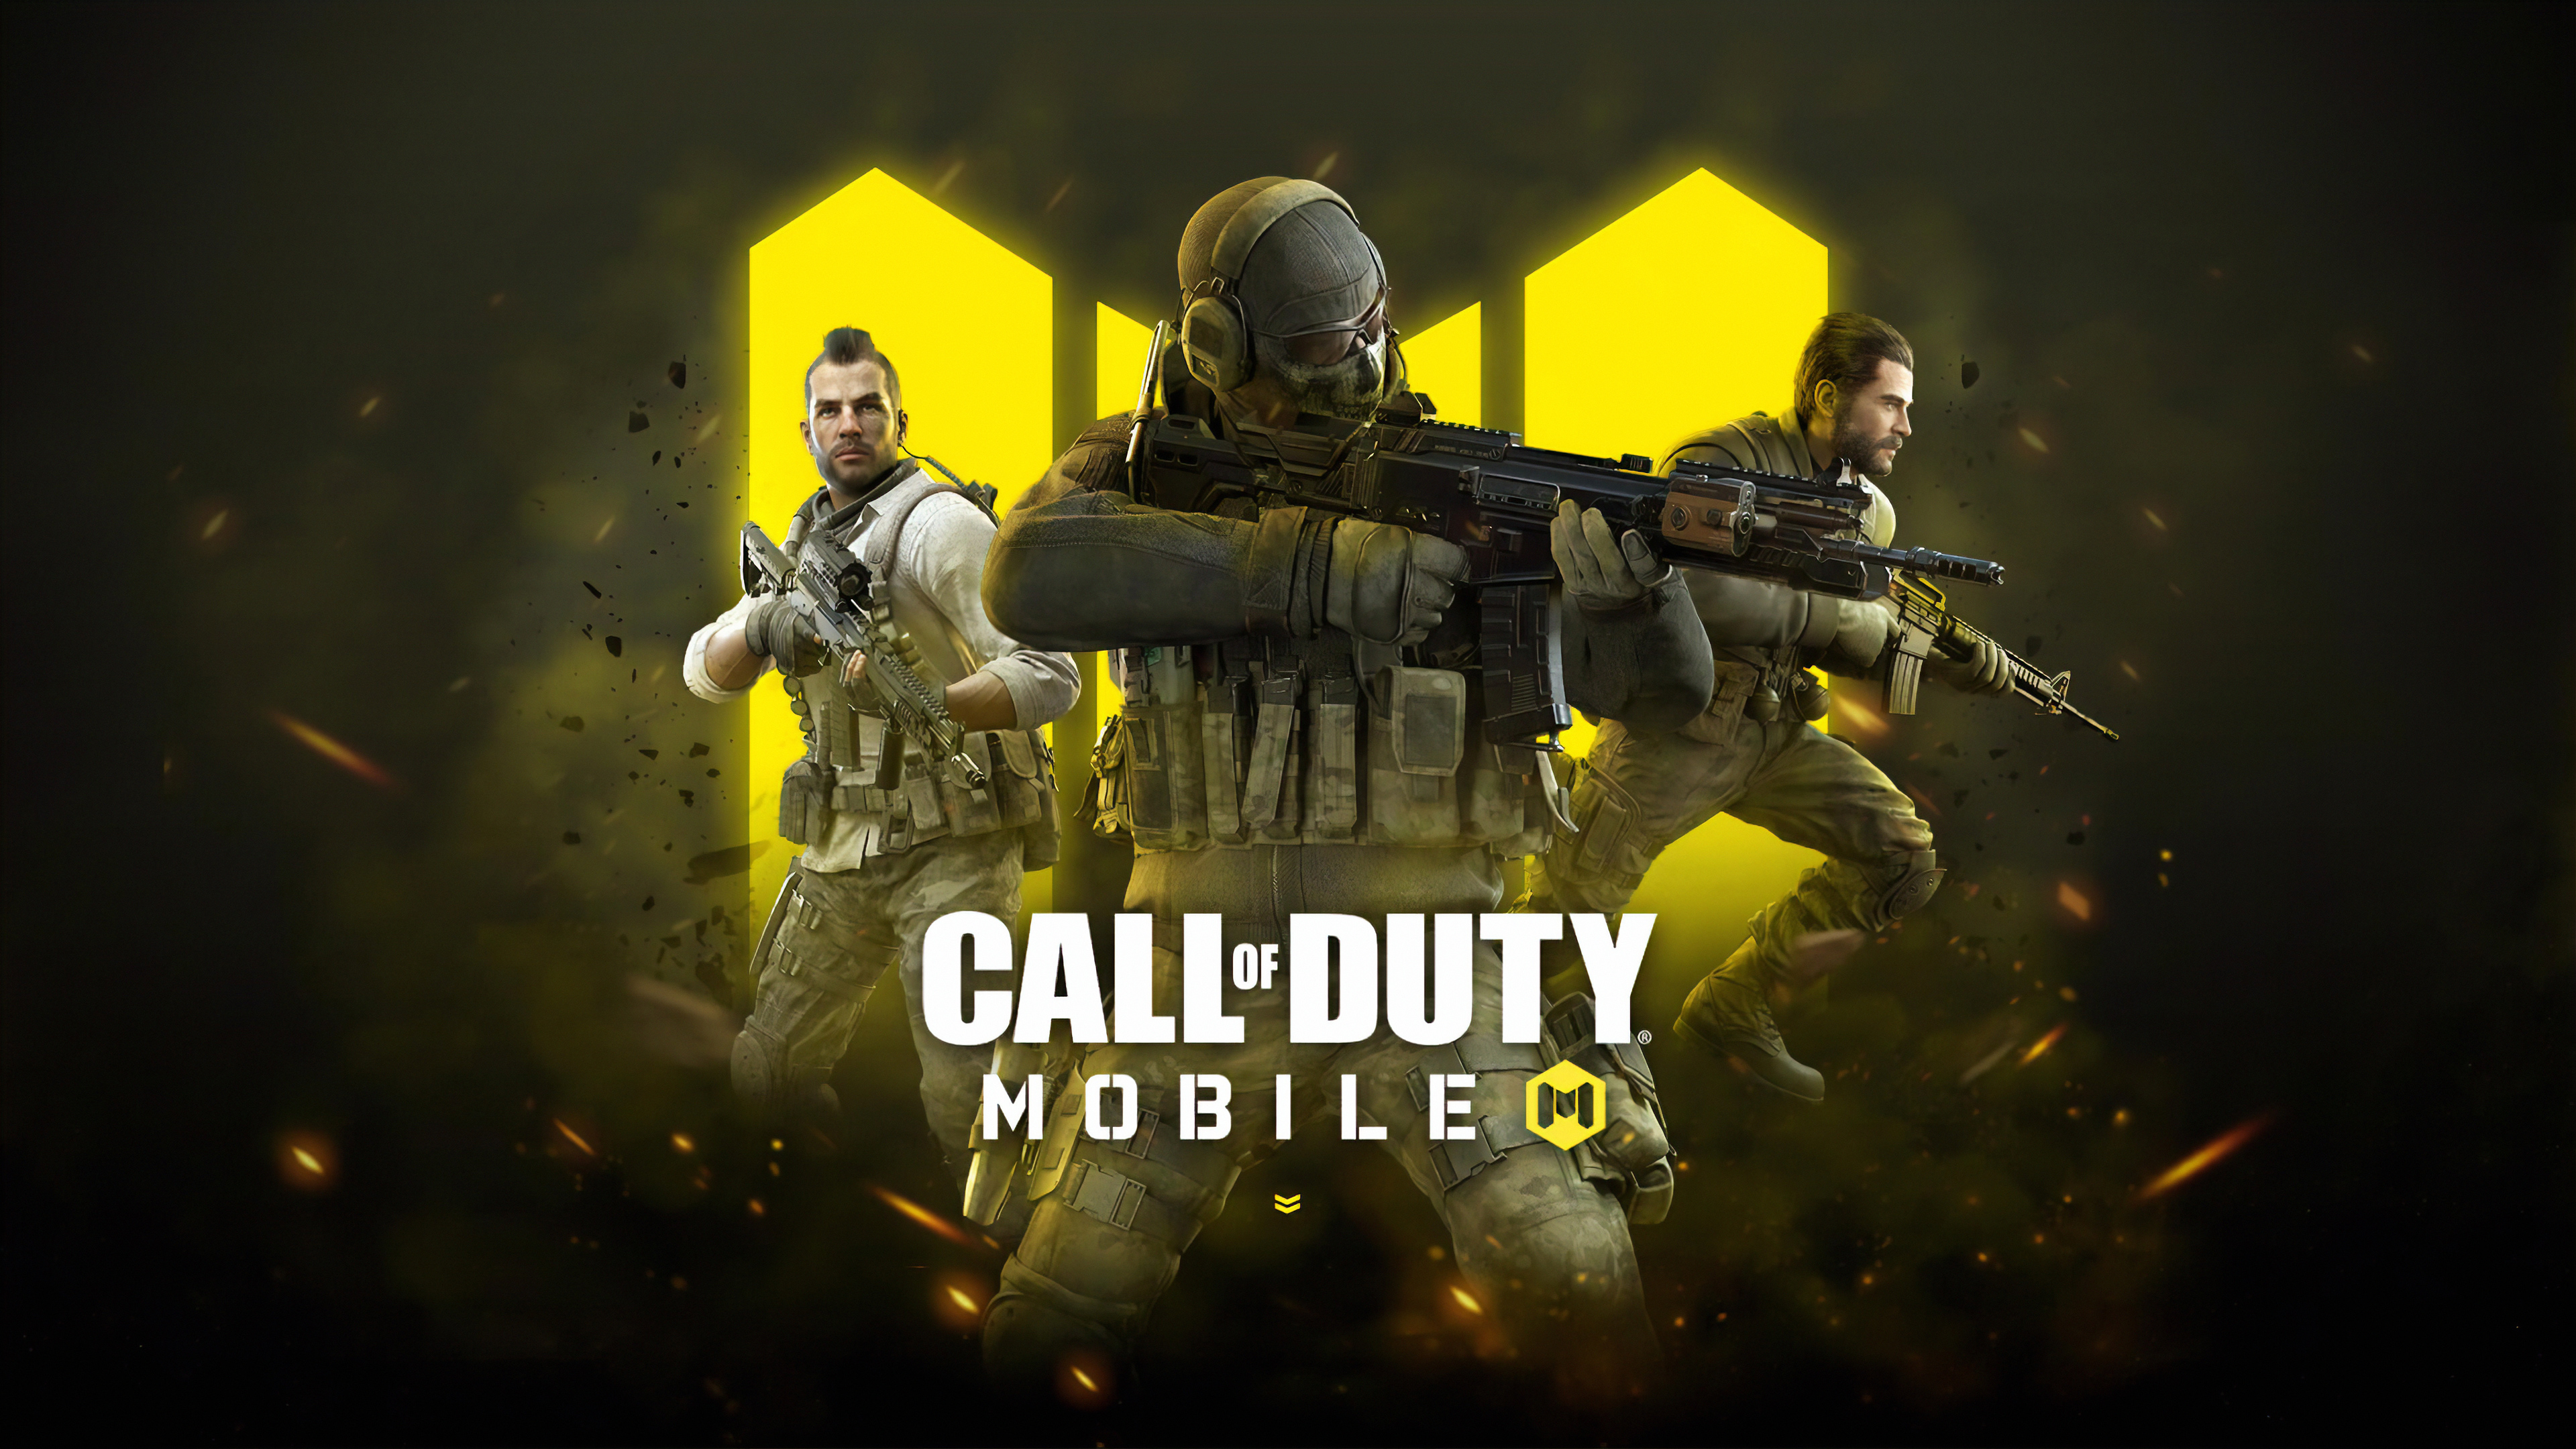 Call Of Duty Mobile 4k Wallpaper Android Games Ios Games Games 778